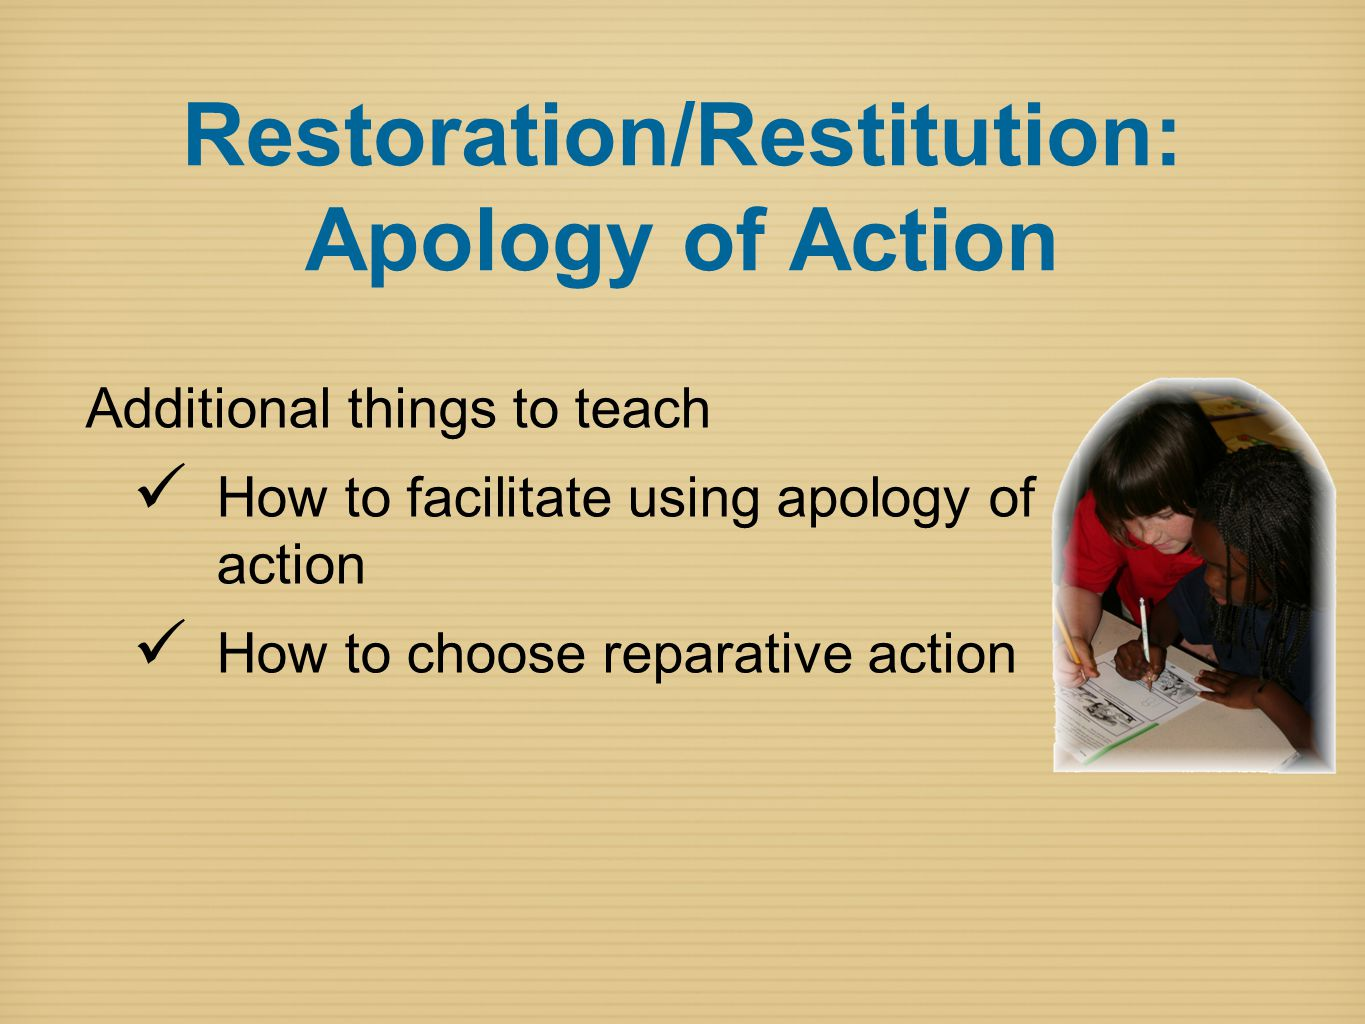 Restoration/Restitution: Apology of Action Additional things to teach How to facilitate using apology of action How to choose reparative action